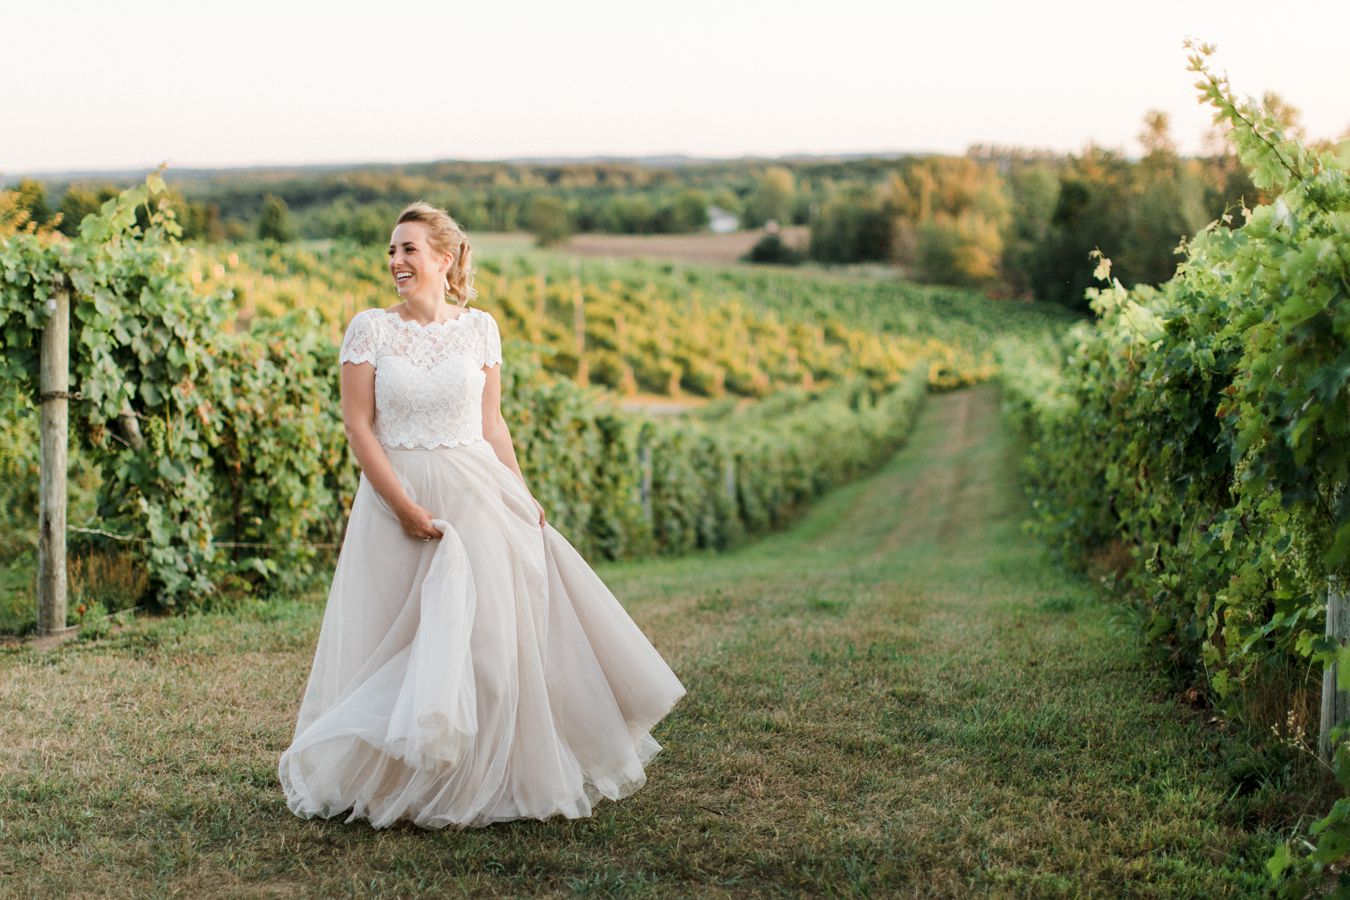 Lake Leelanau Wedding Photographer | Cory Weber Photography